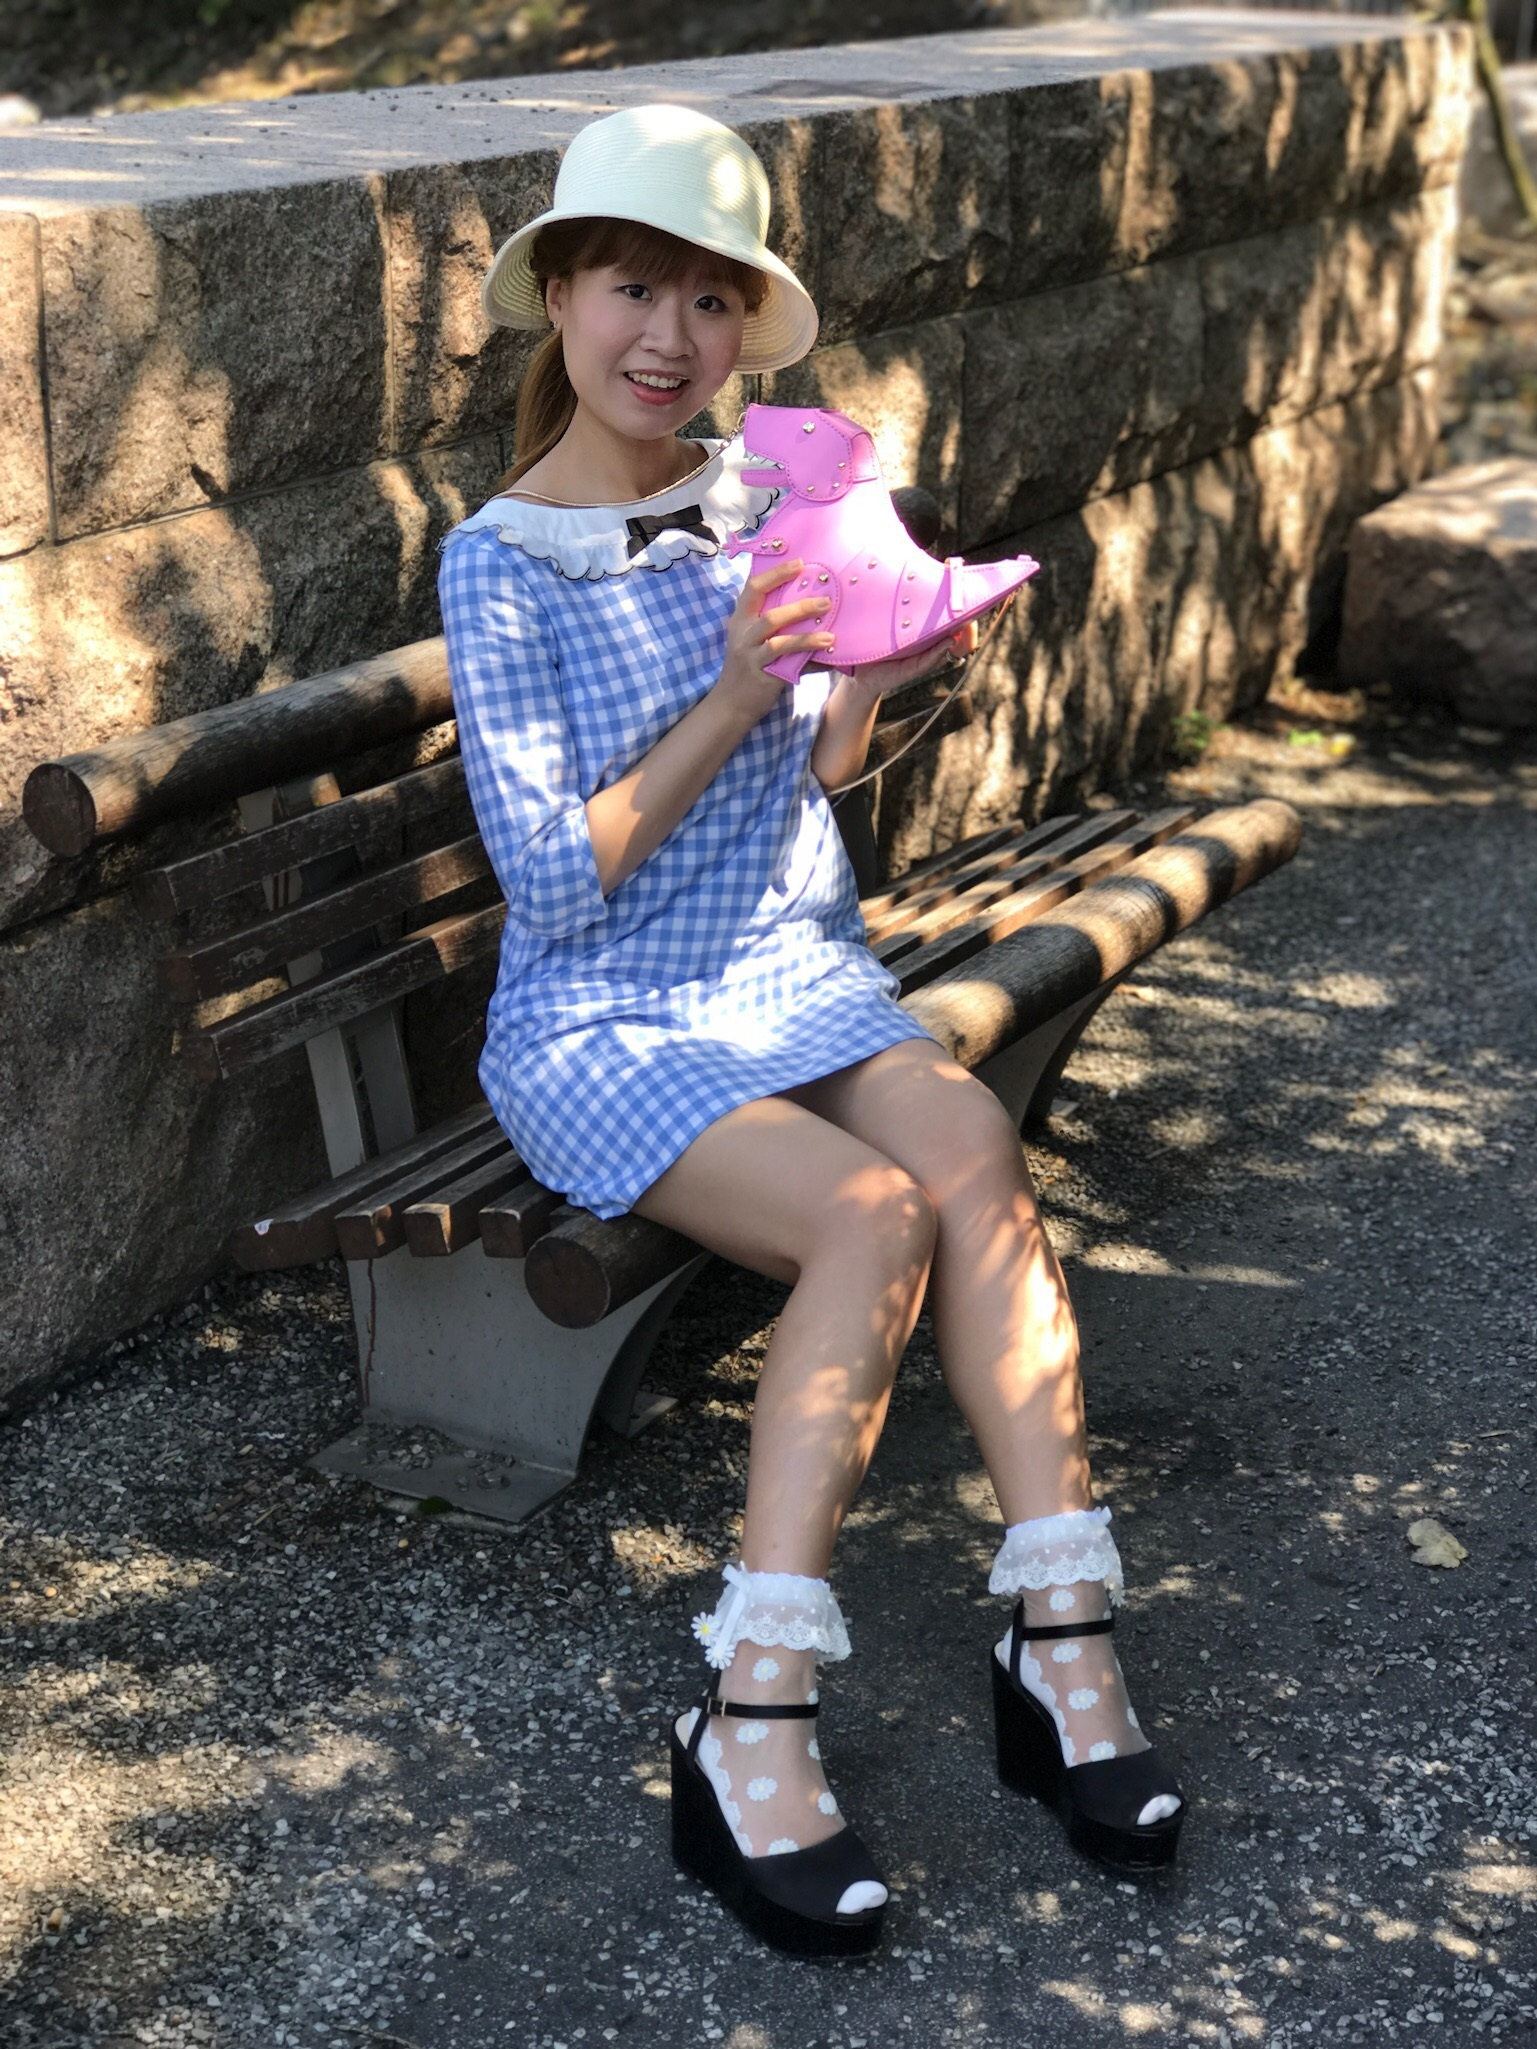 Hat: LODISPOTTO; dress: MILK; bag: Kate Spade New York; socks: LIZ LISA; shoes: dazzlin.